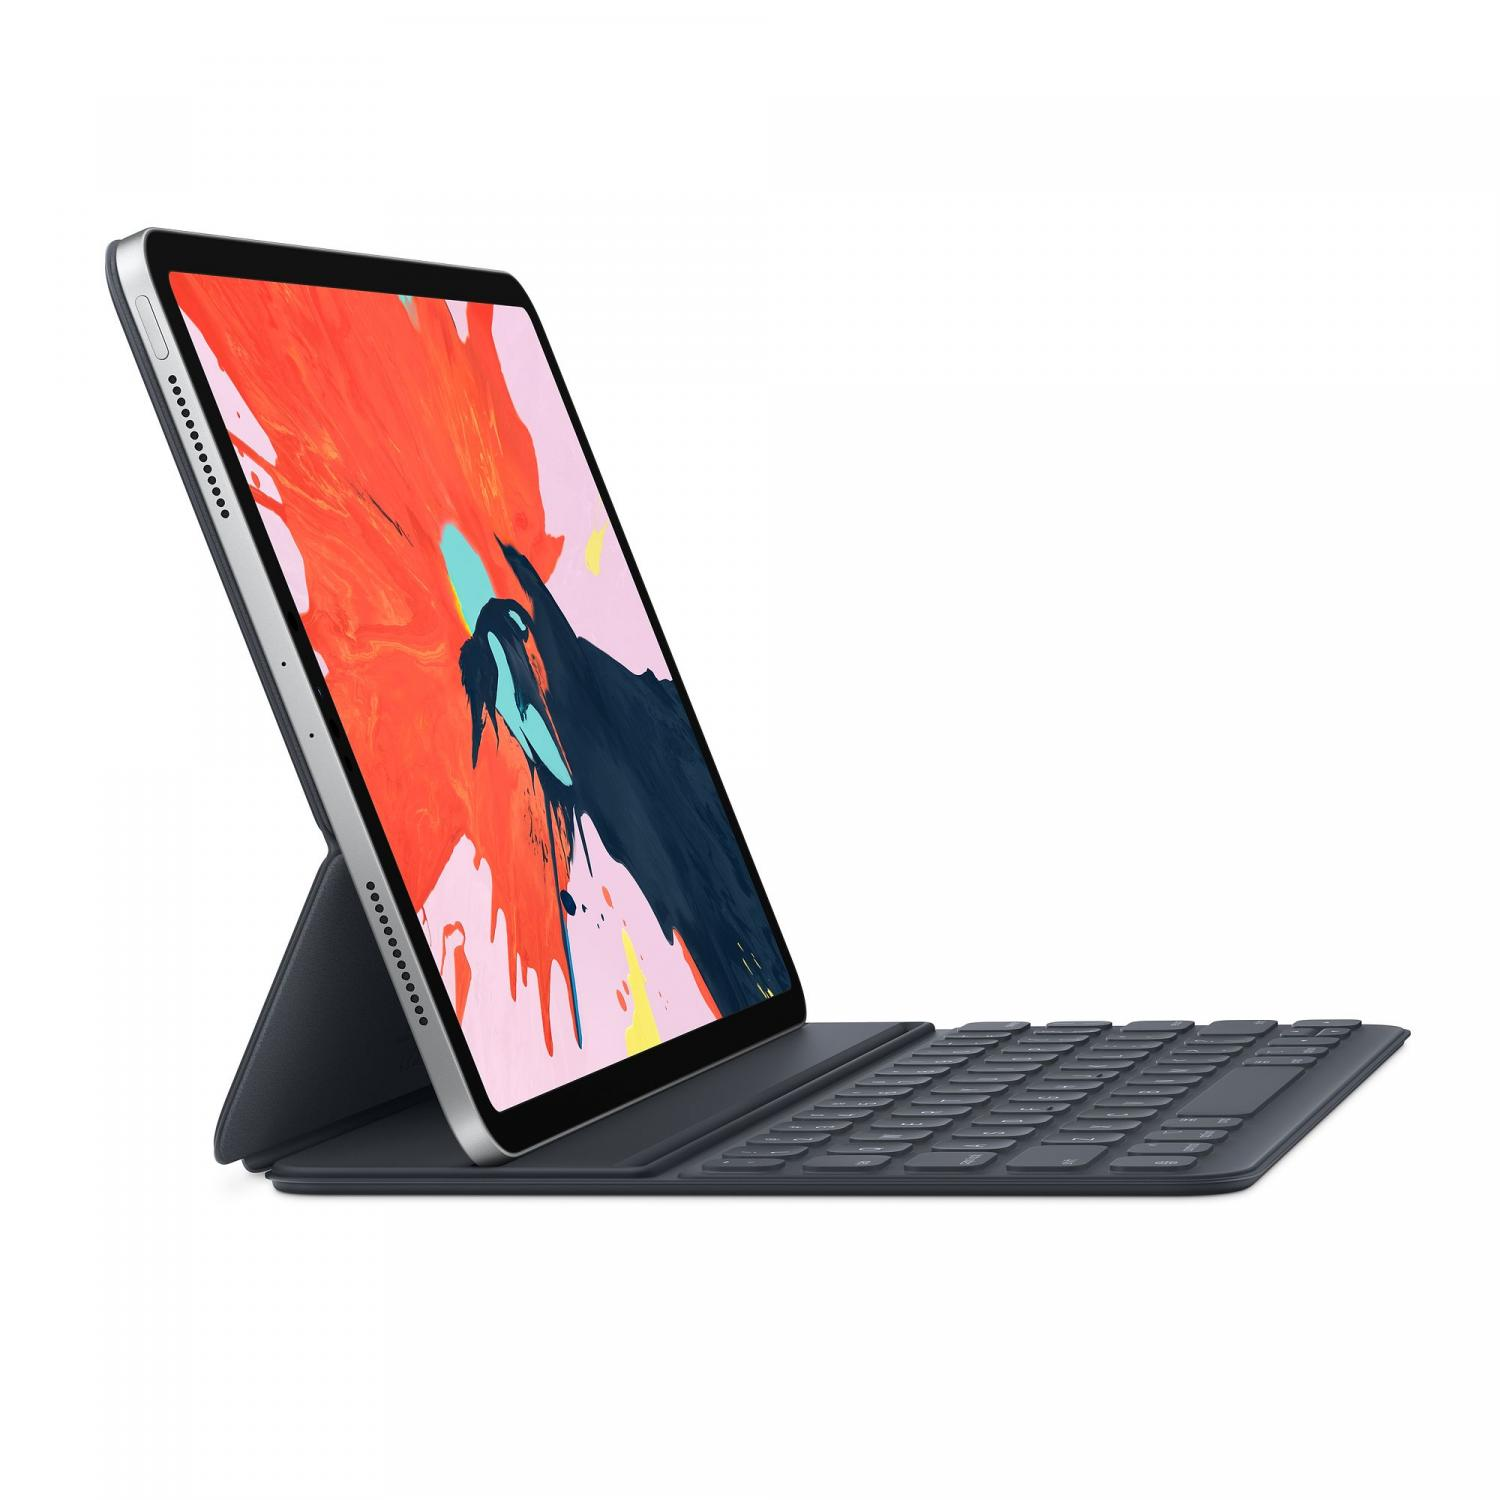 Apple MU8G2LL/A Smart Keyboard Folio for 11-inch iPad Pro